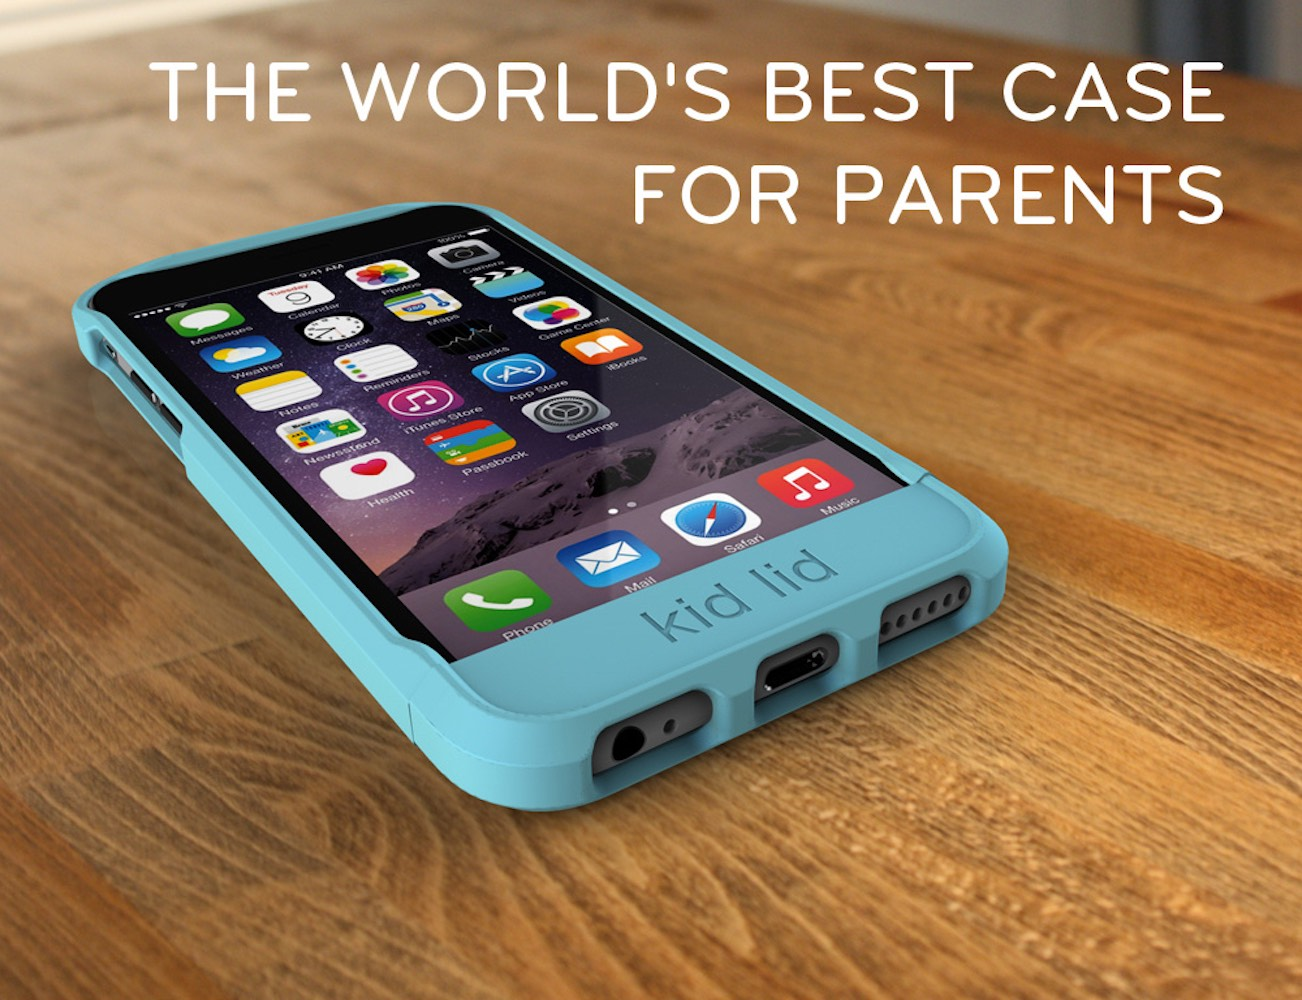 World's Best iPhone Case for Parents